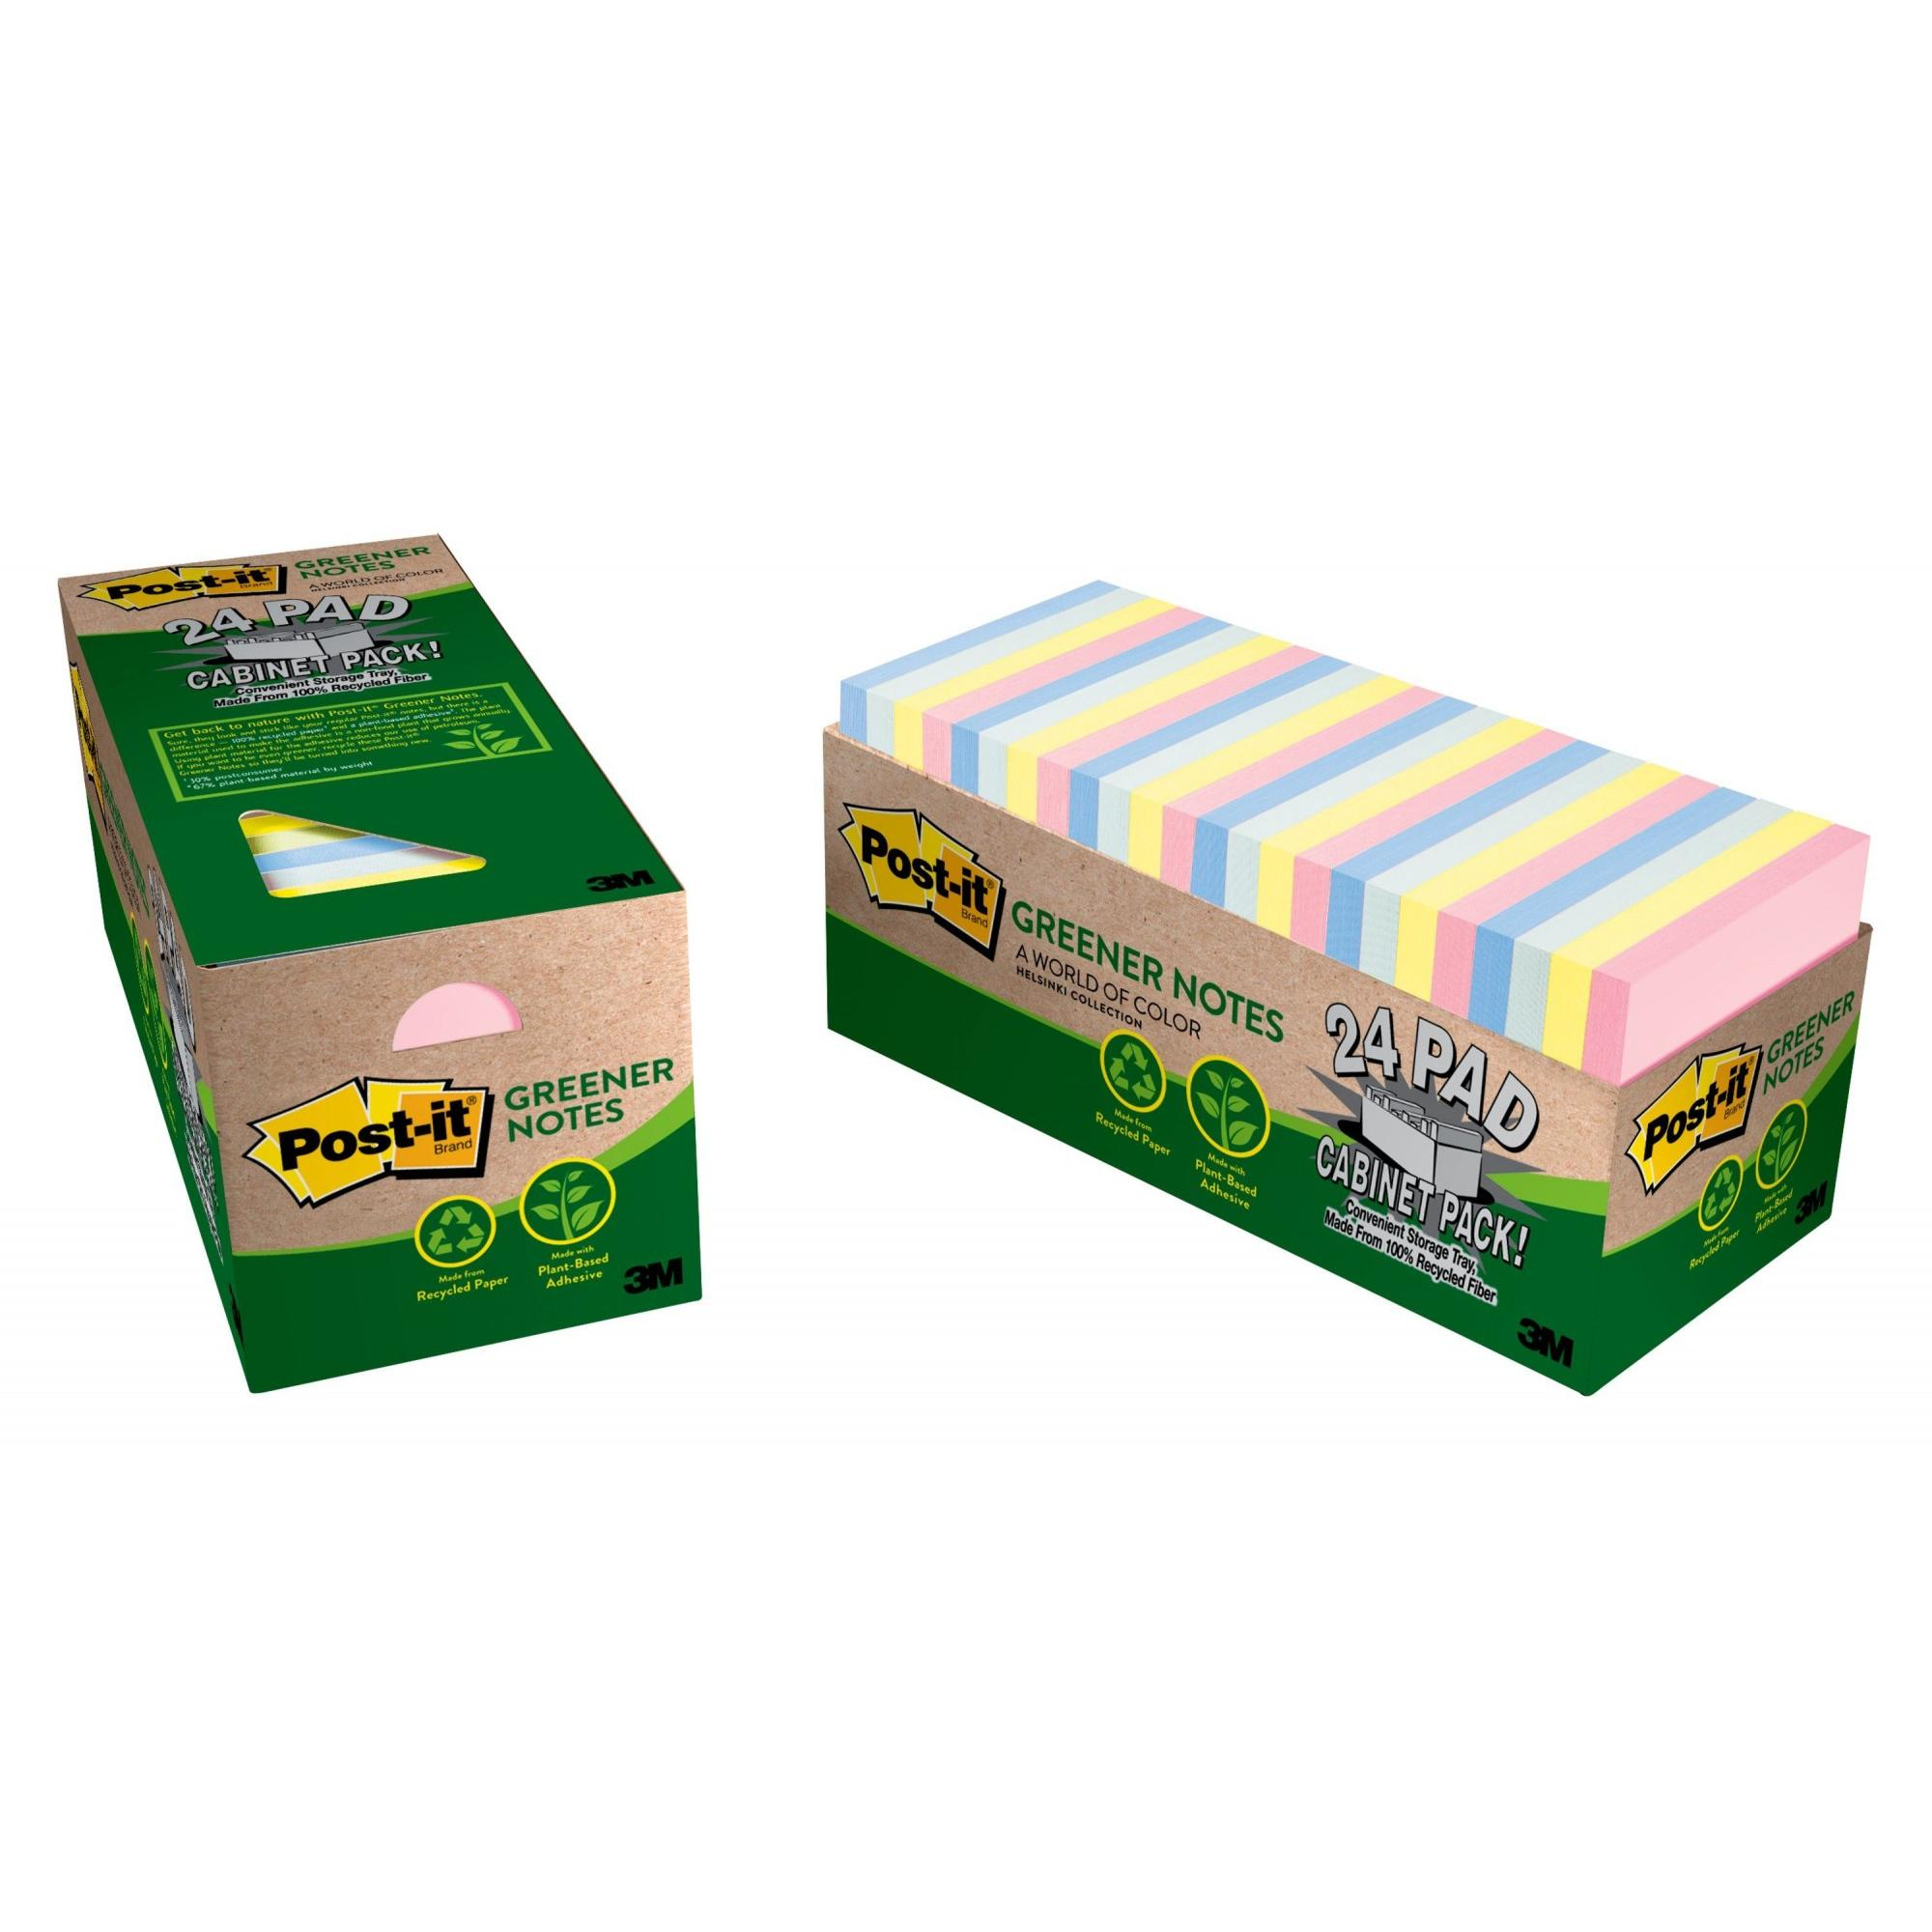 Post-it Greener Sticky Notes Cabinet Pack, 3in. x 3in., Helsinki Collection, 24 Pads